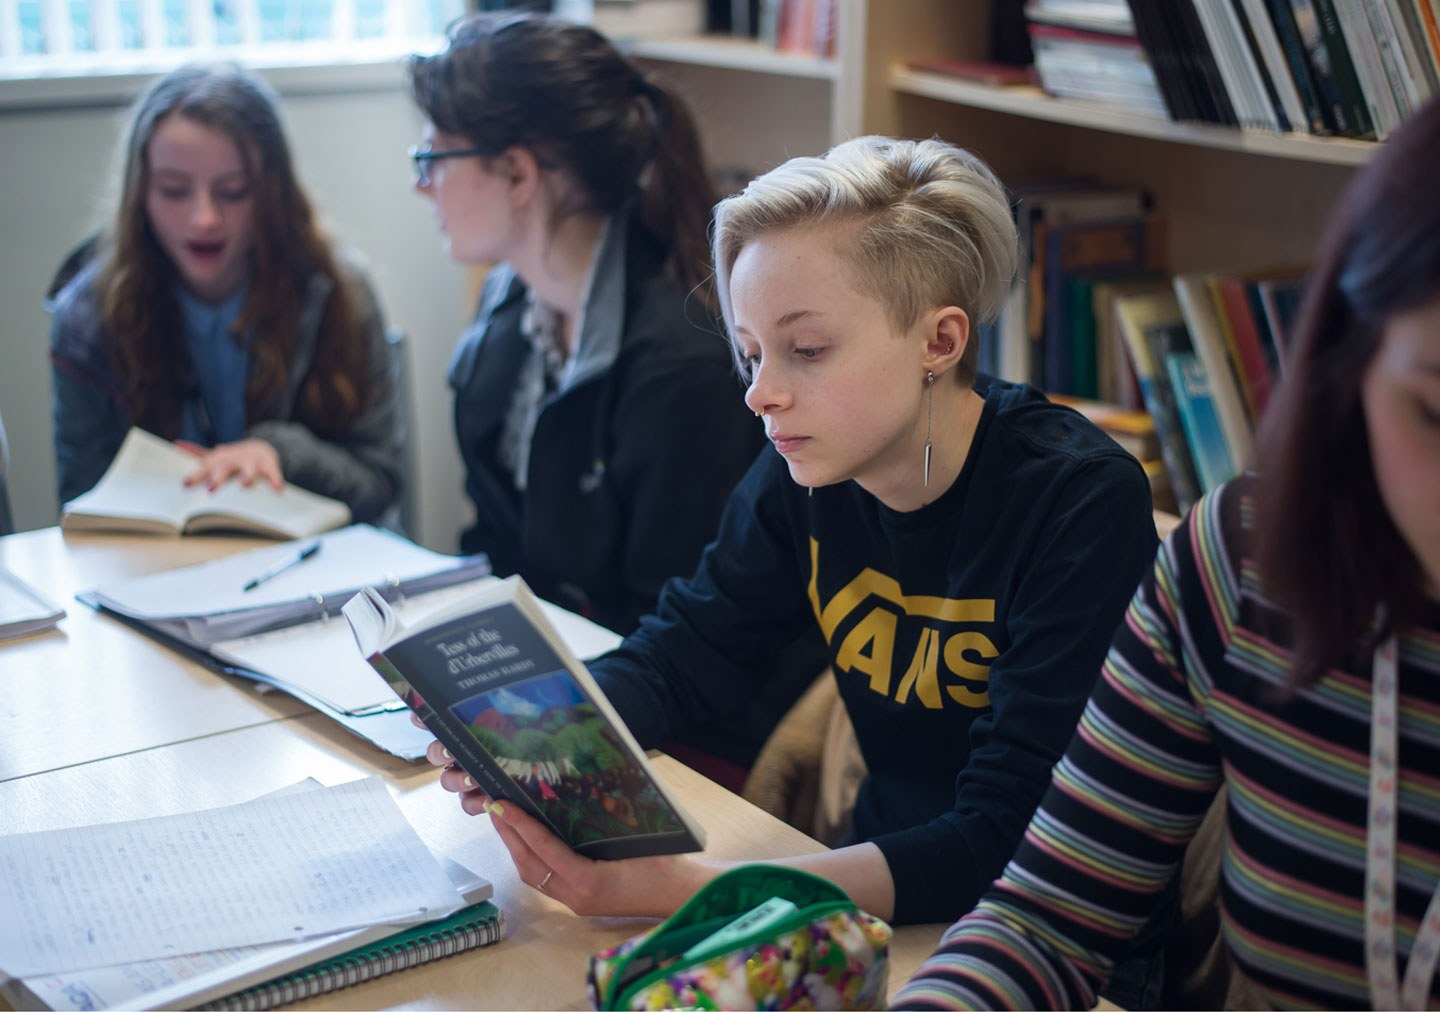 A student is reading Tess of the D'Urbervilles